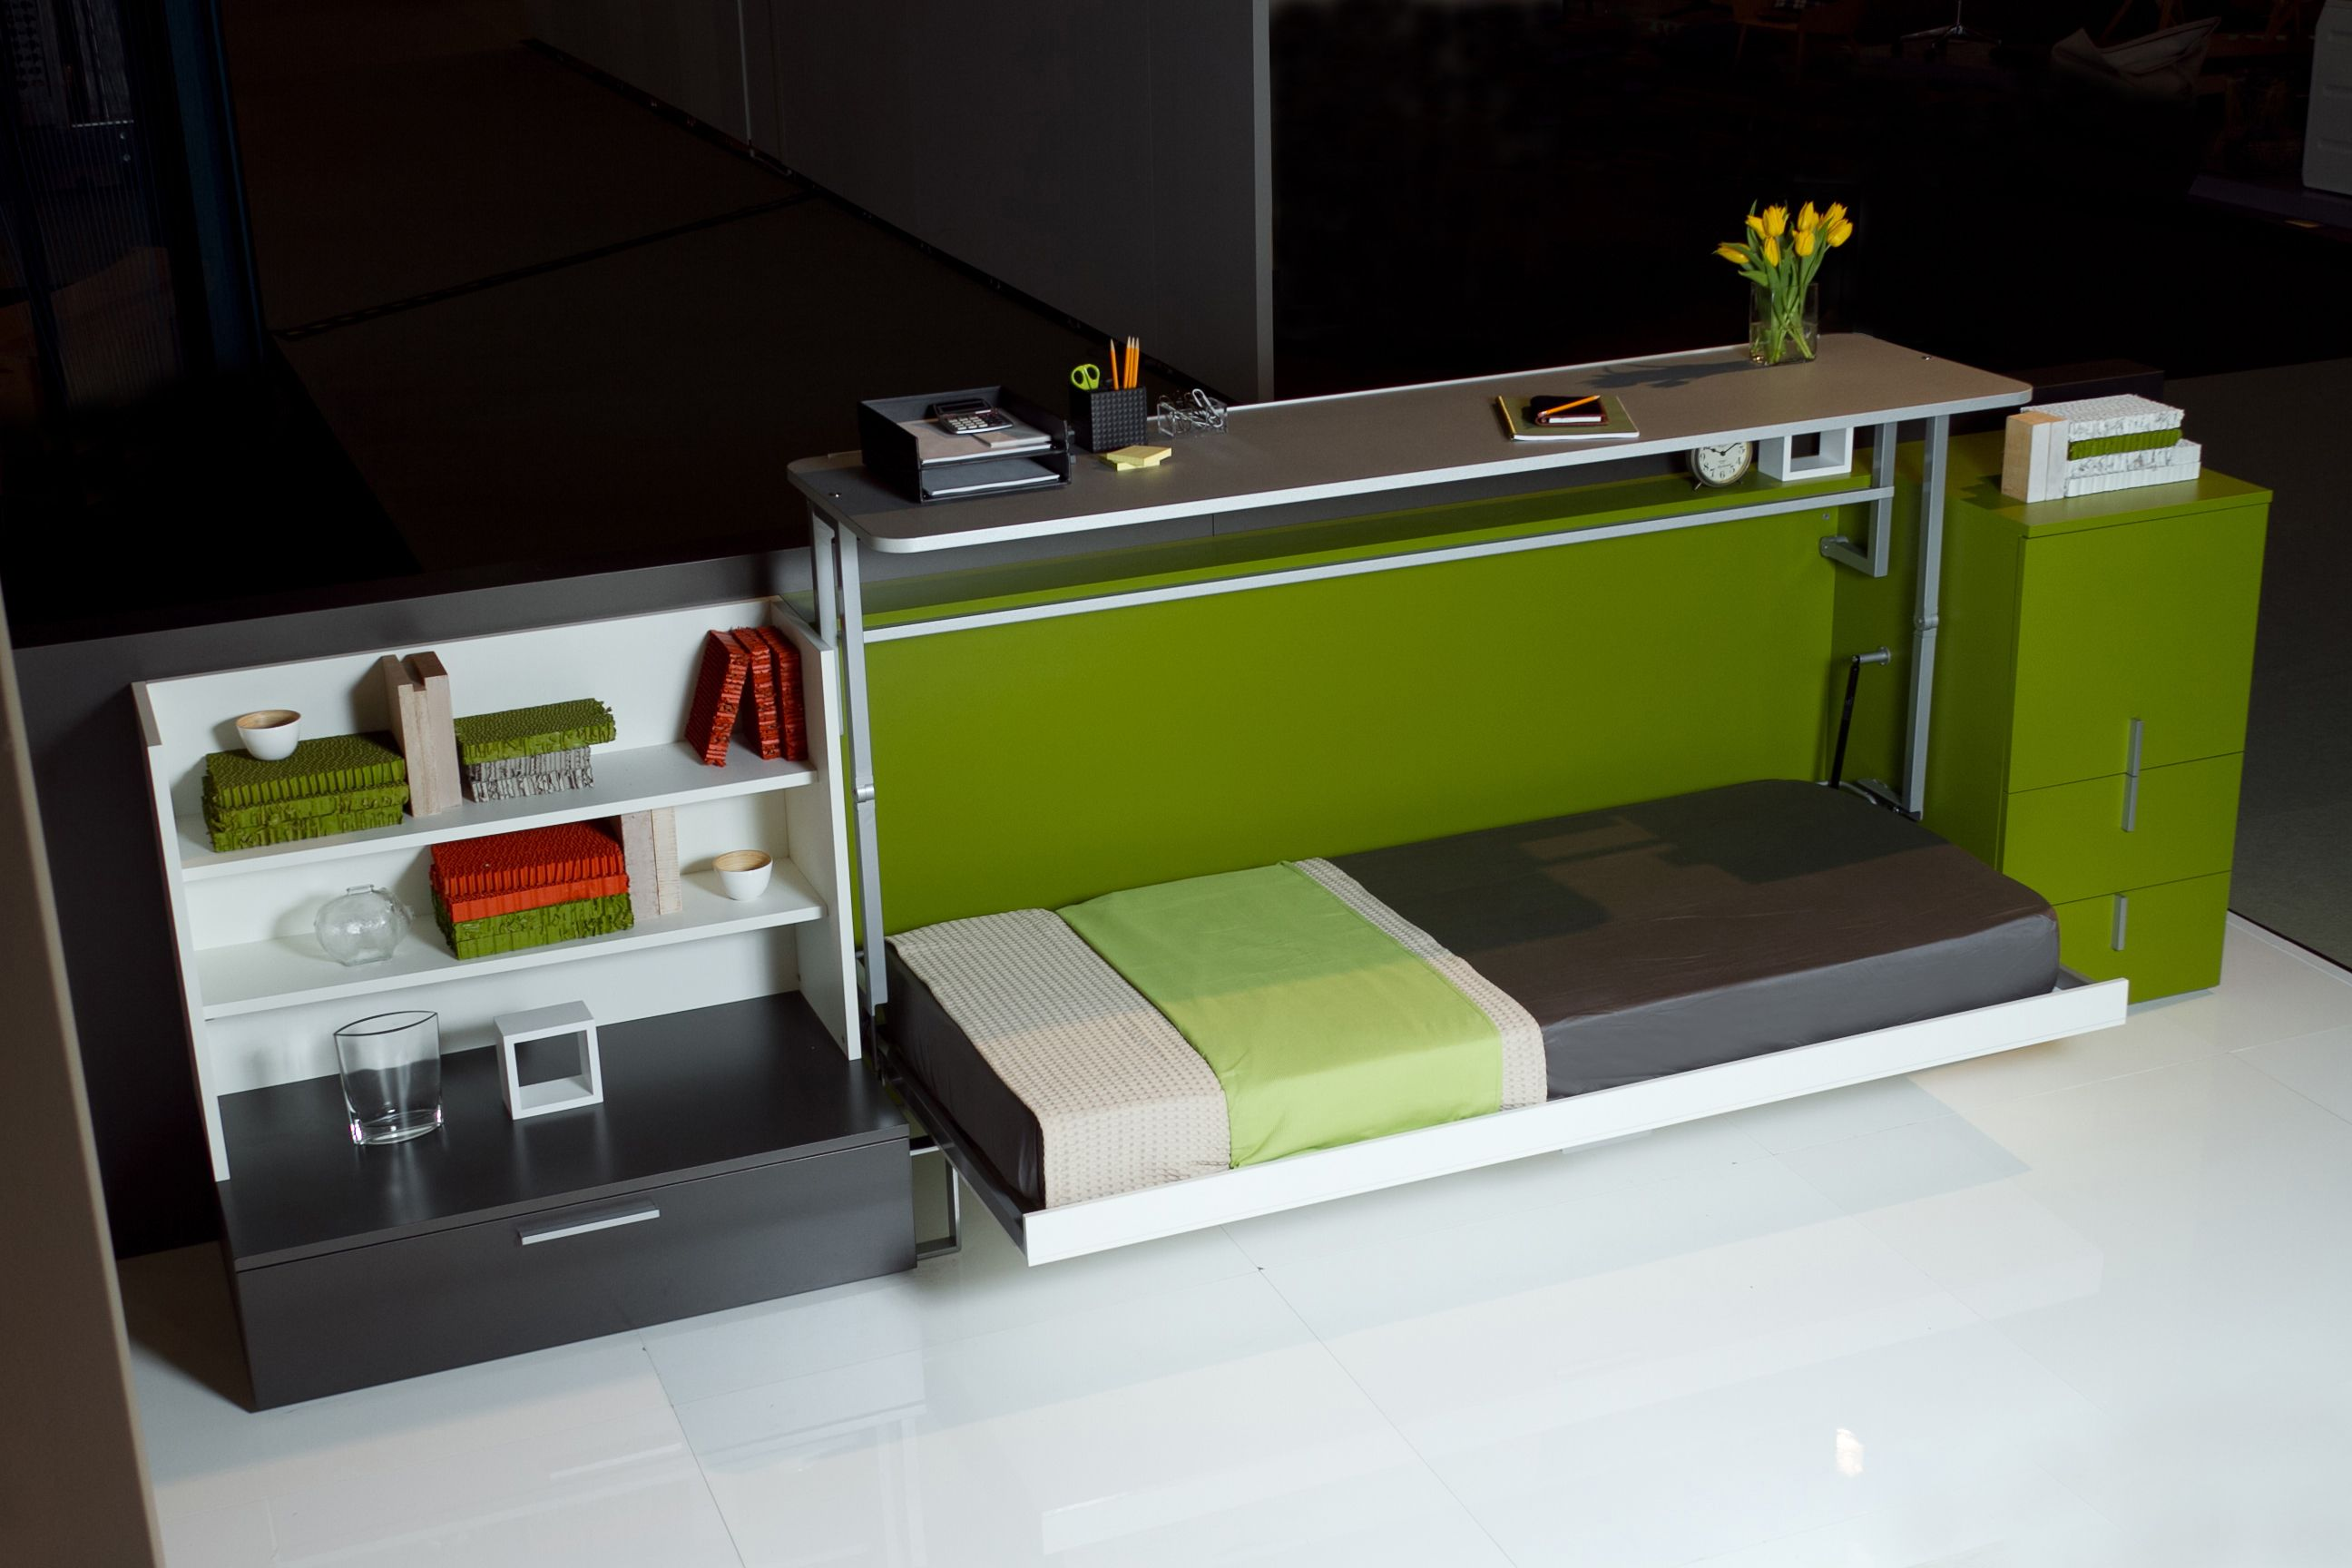 The Cabrio IN is a horizontally opening twin size wall bed with a desk that